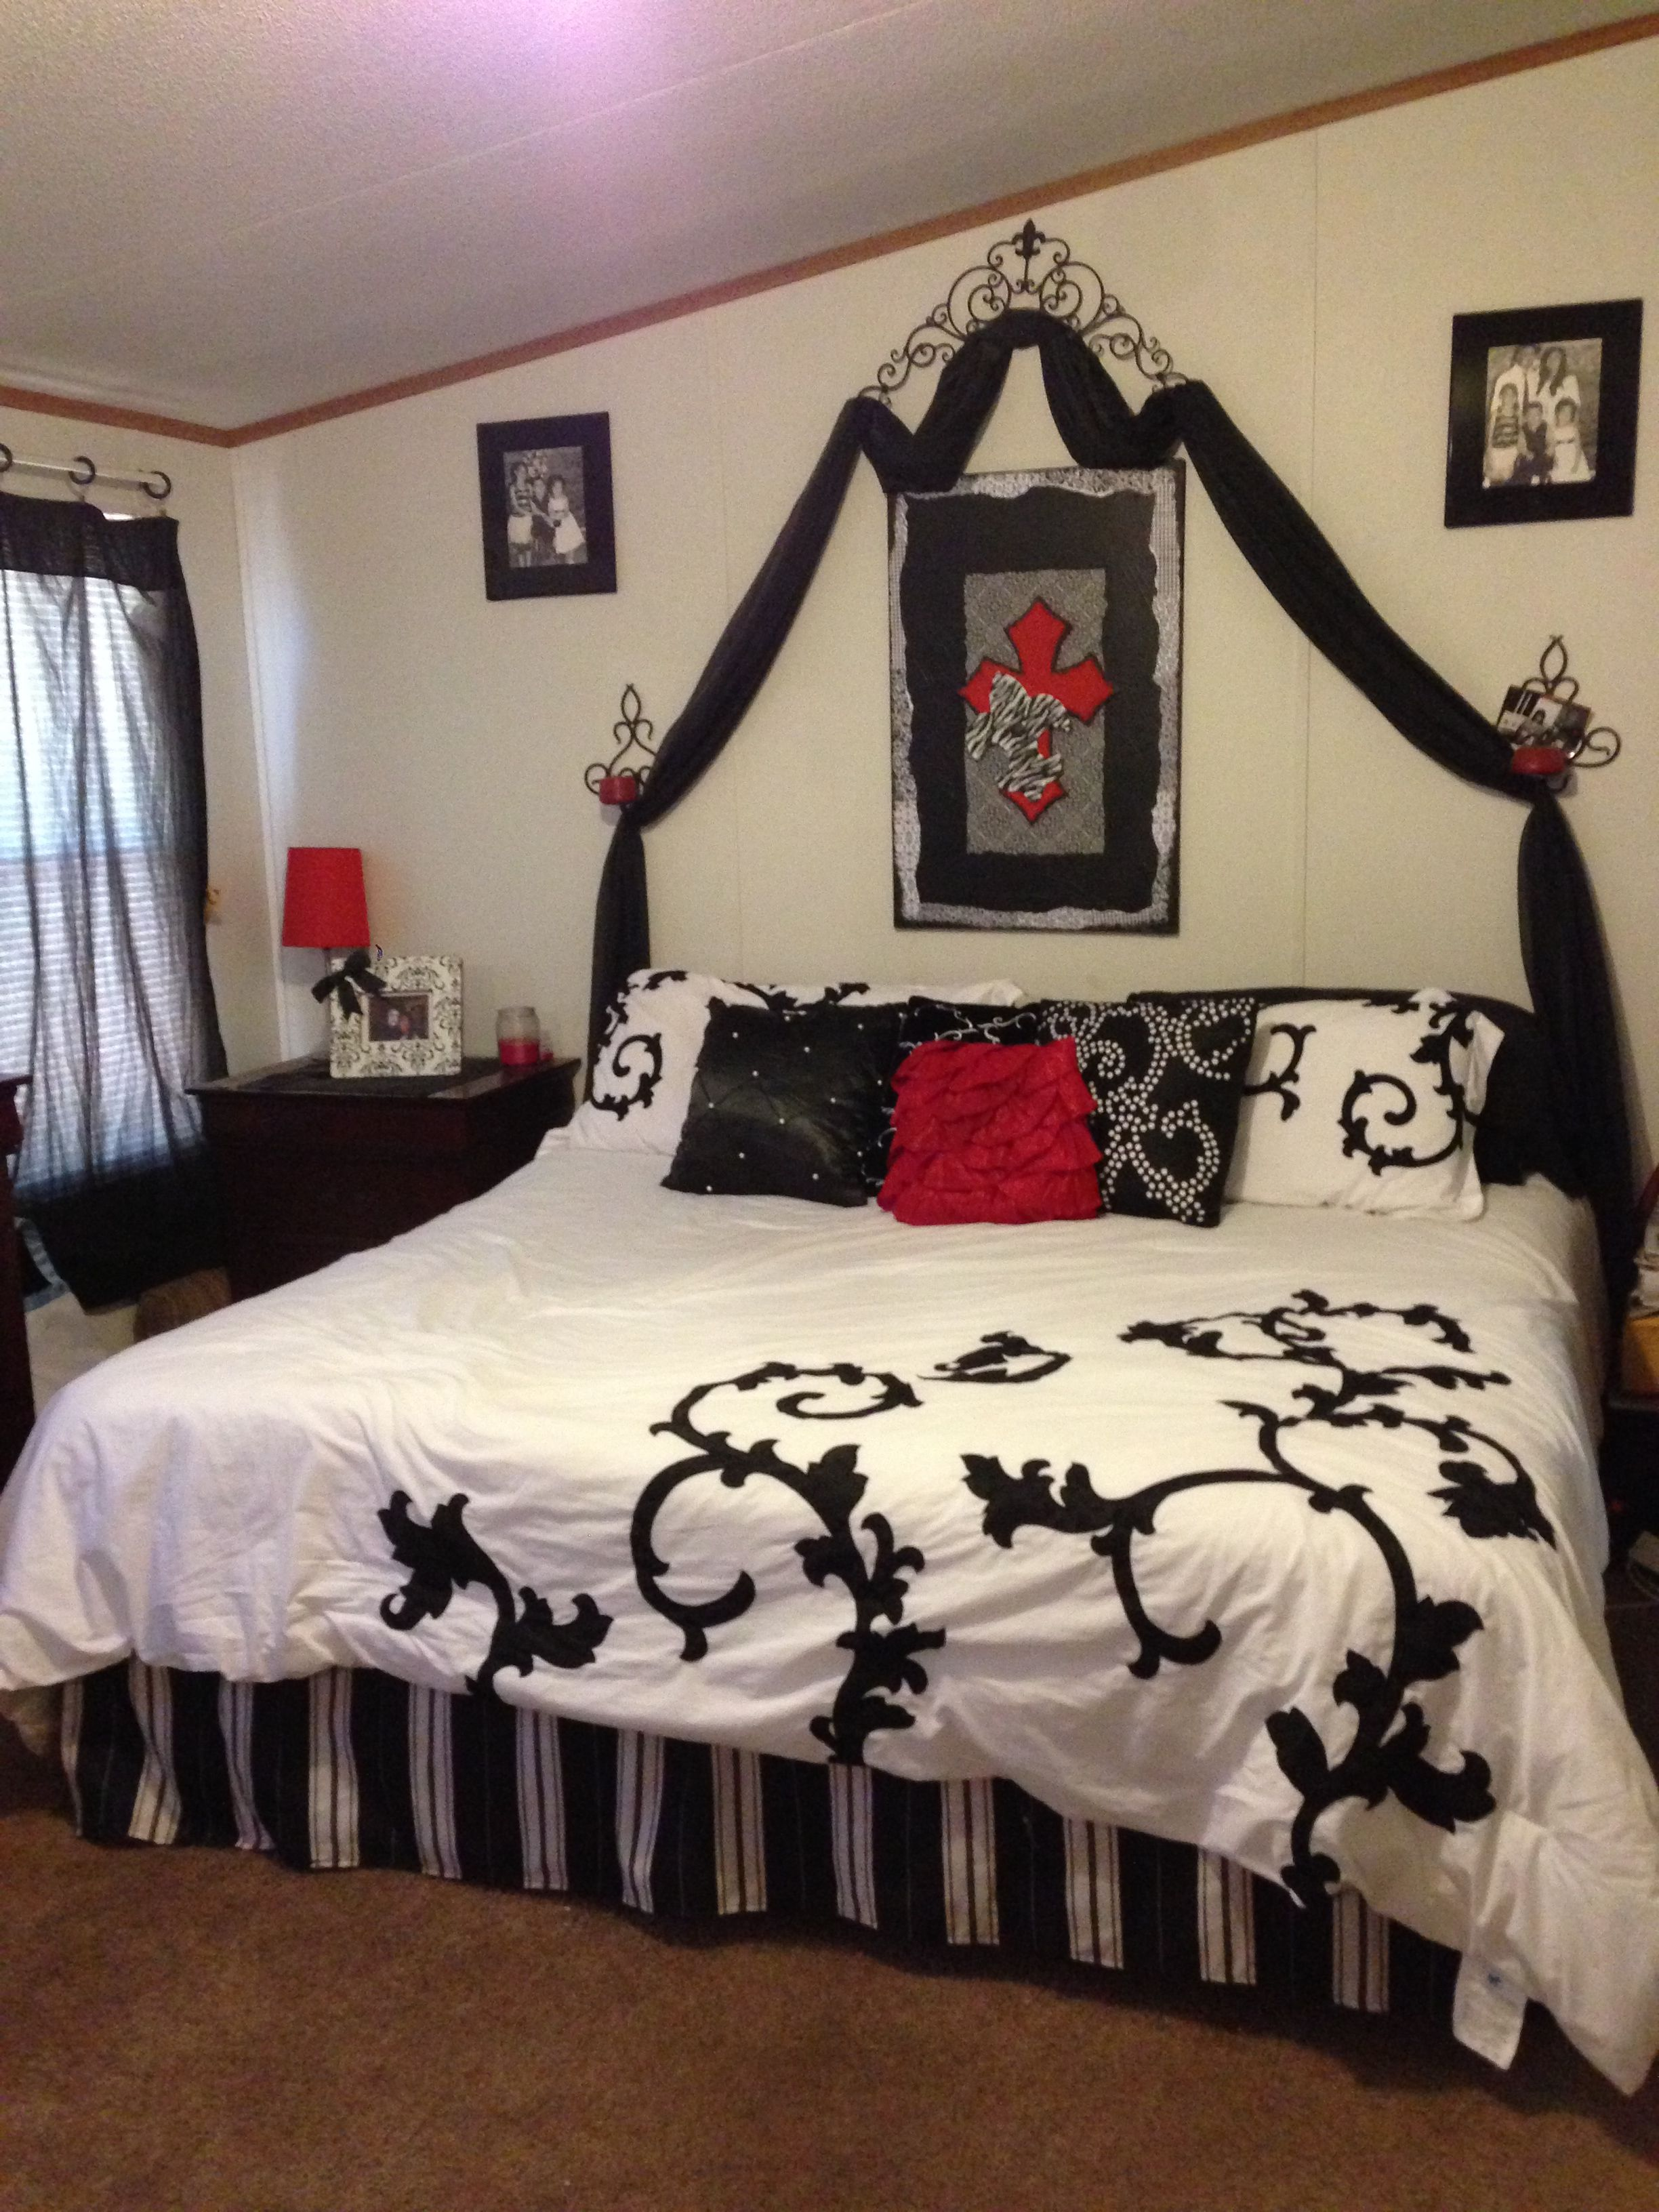 The crosses where the headboard is looks great. The red gives the room a pop of color